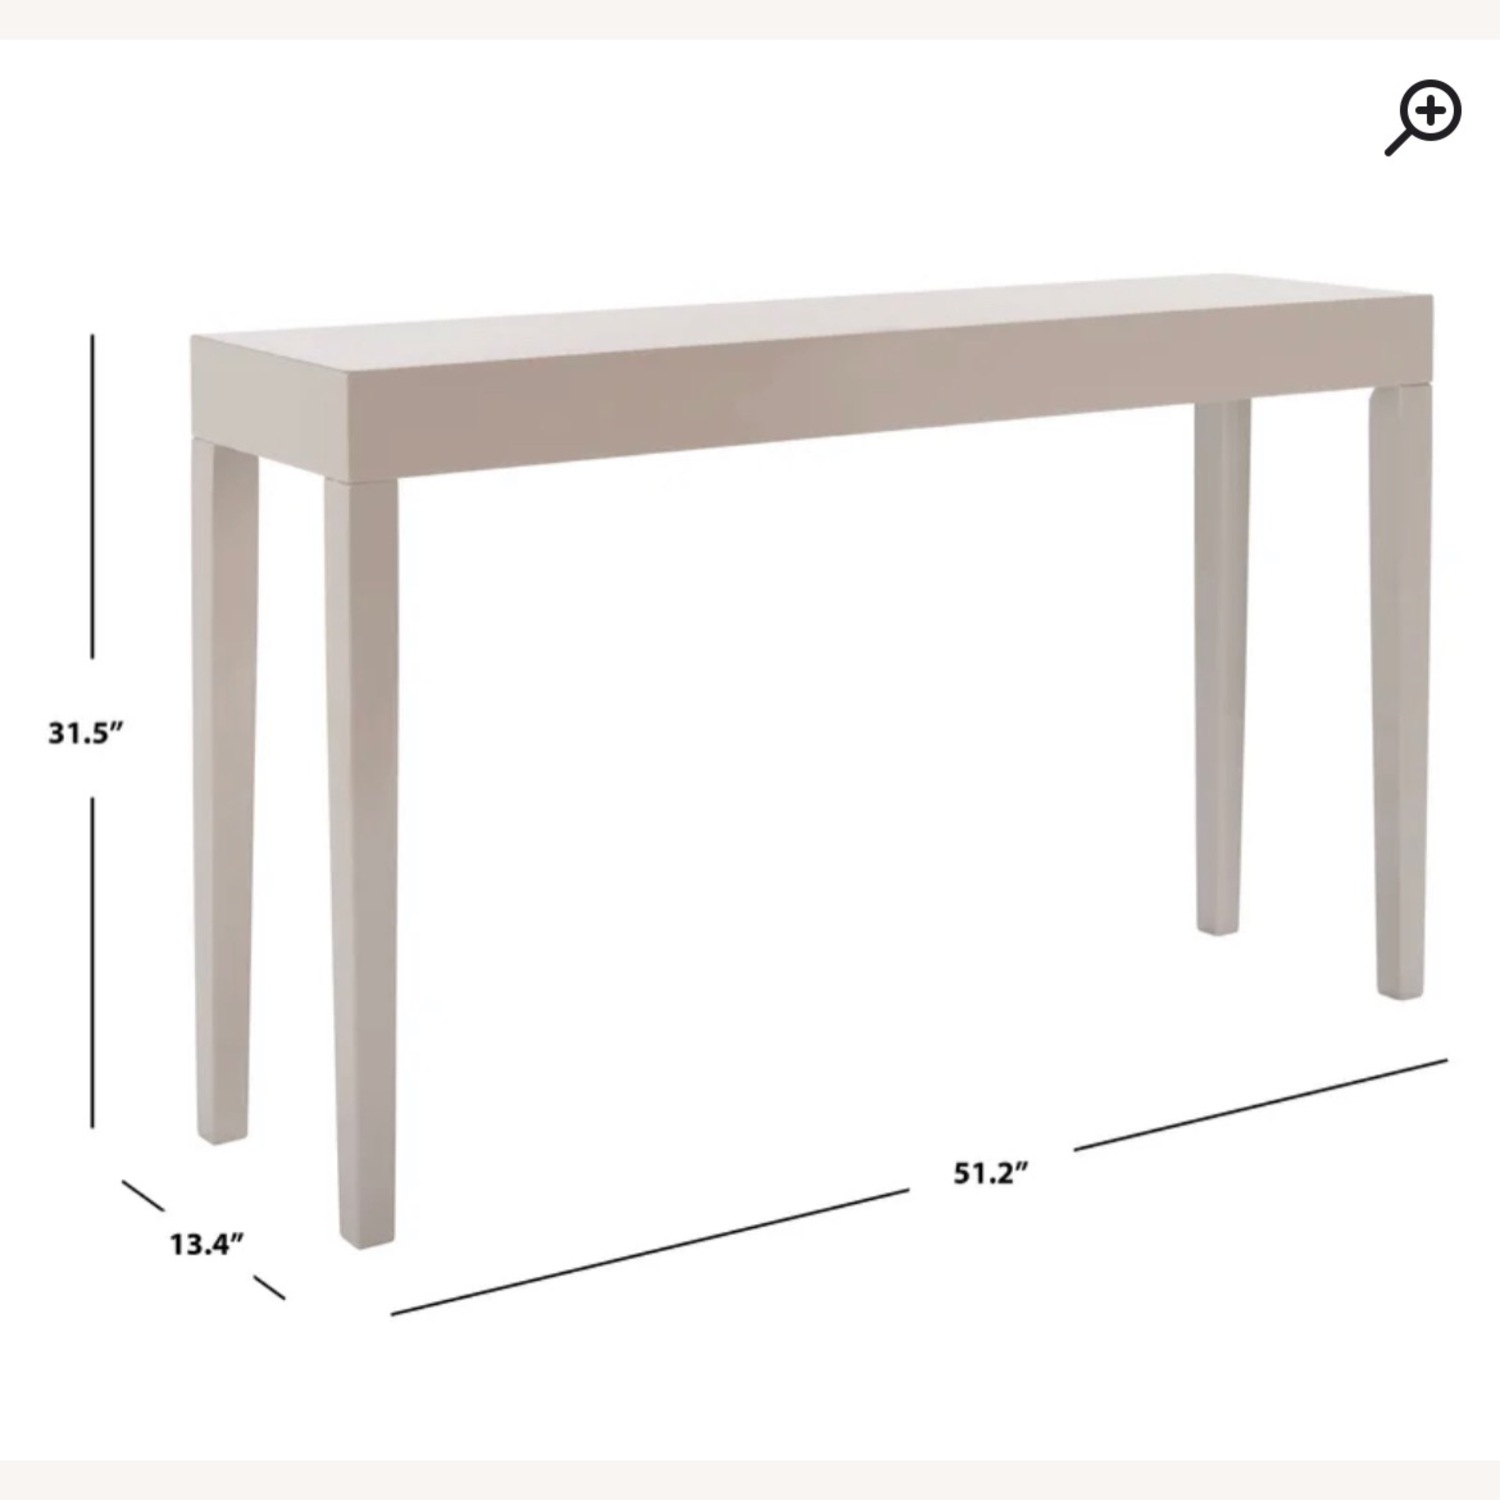 Wayfair Modern Taupe Console/Entry Table - image-5